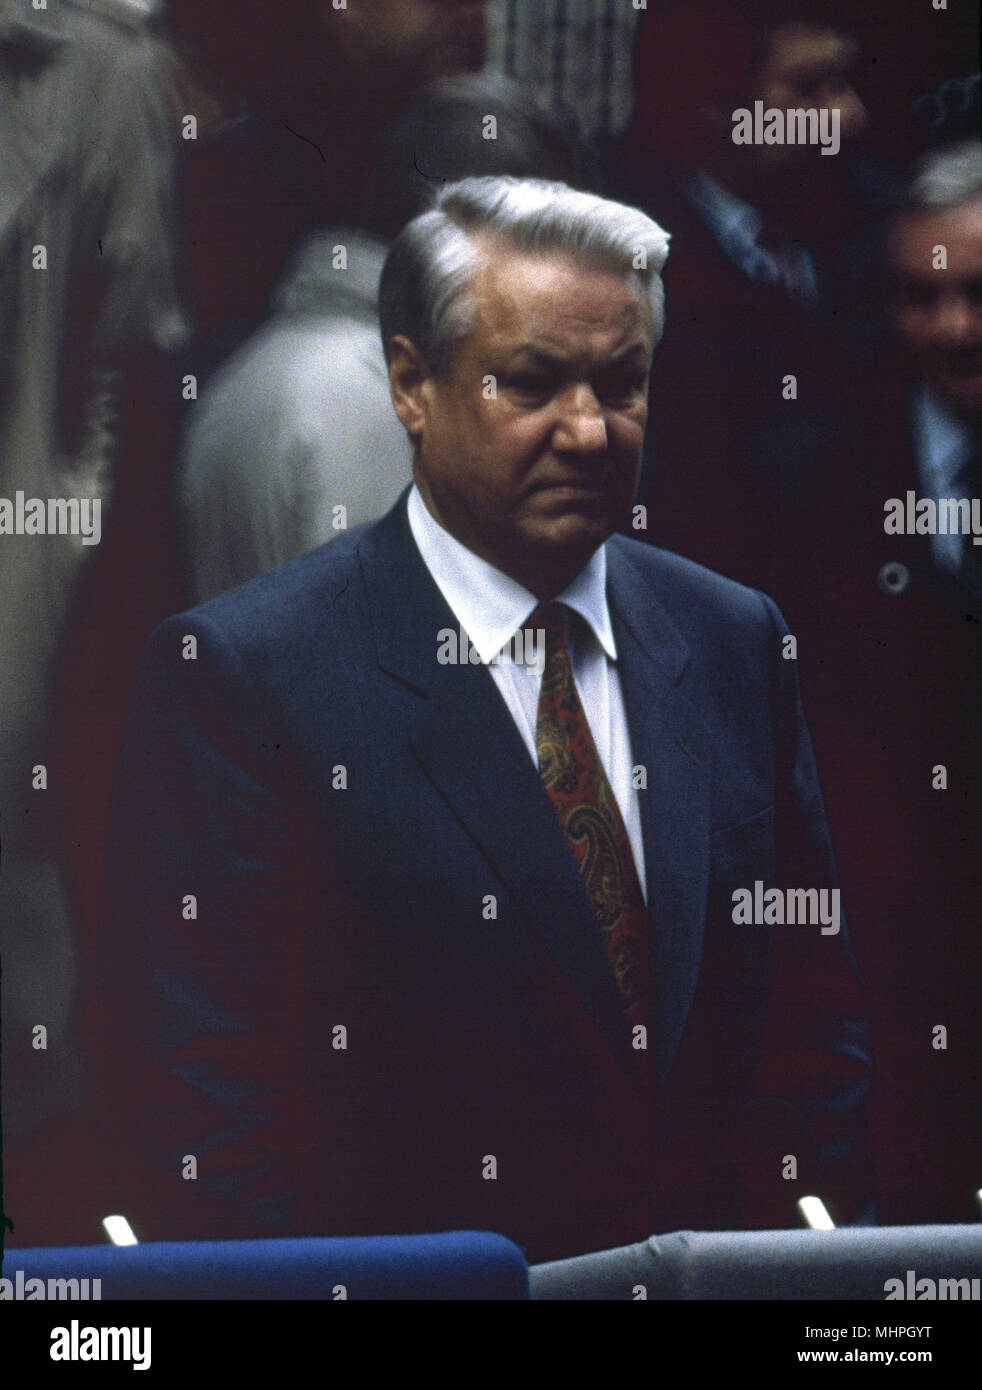 Boris Yeltsin, Russian President, at Downing Street, London, in January 1992, where he was making a joint statement with John Major, British Prime Minister.      Date: 1992 - Stock Image